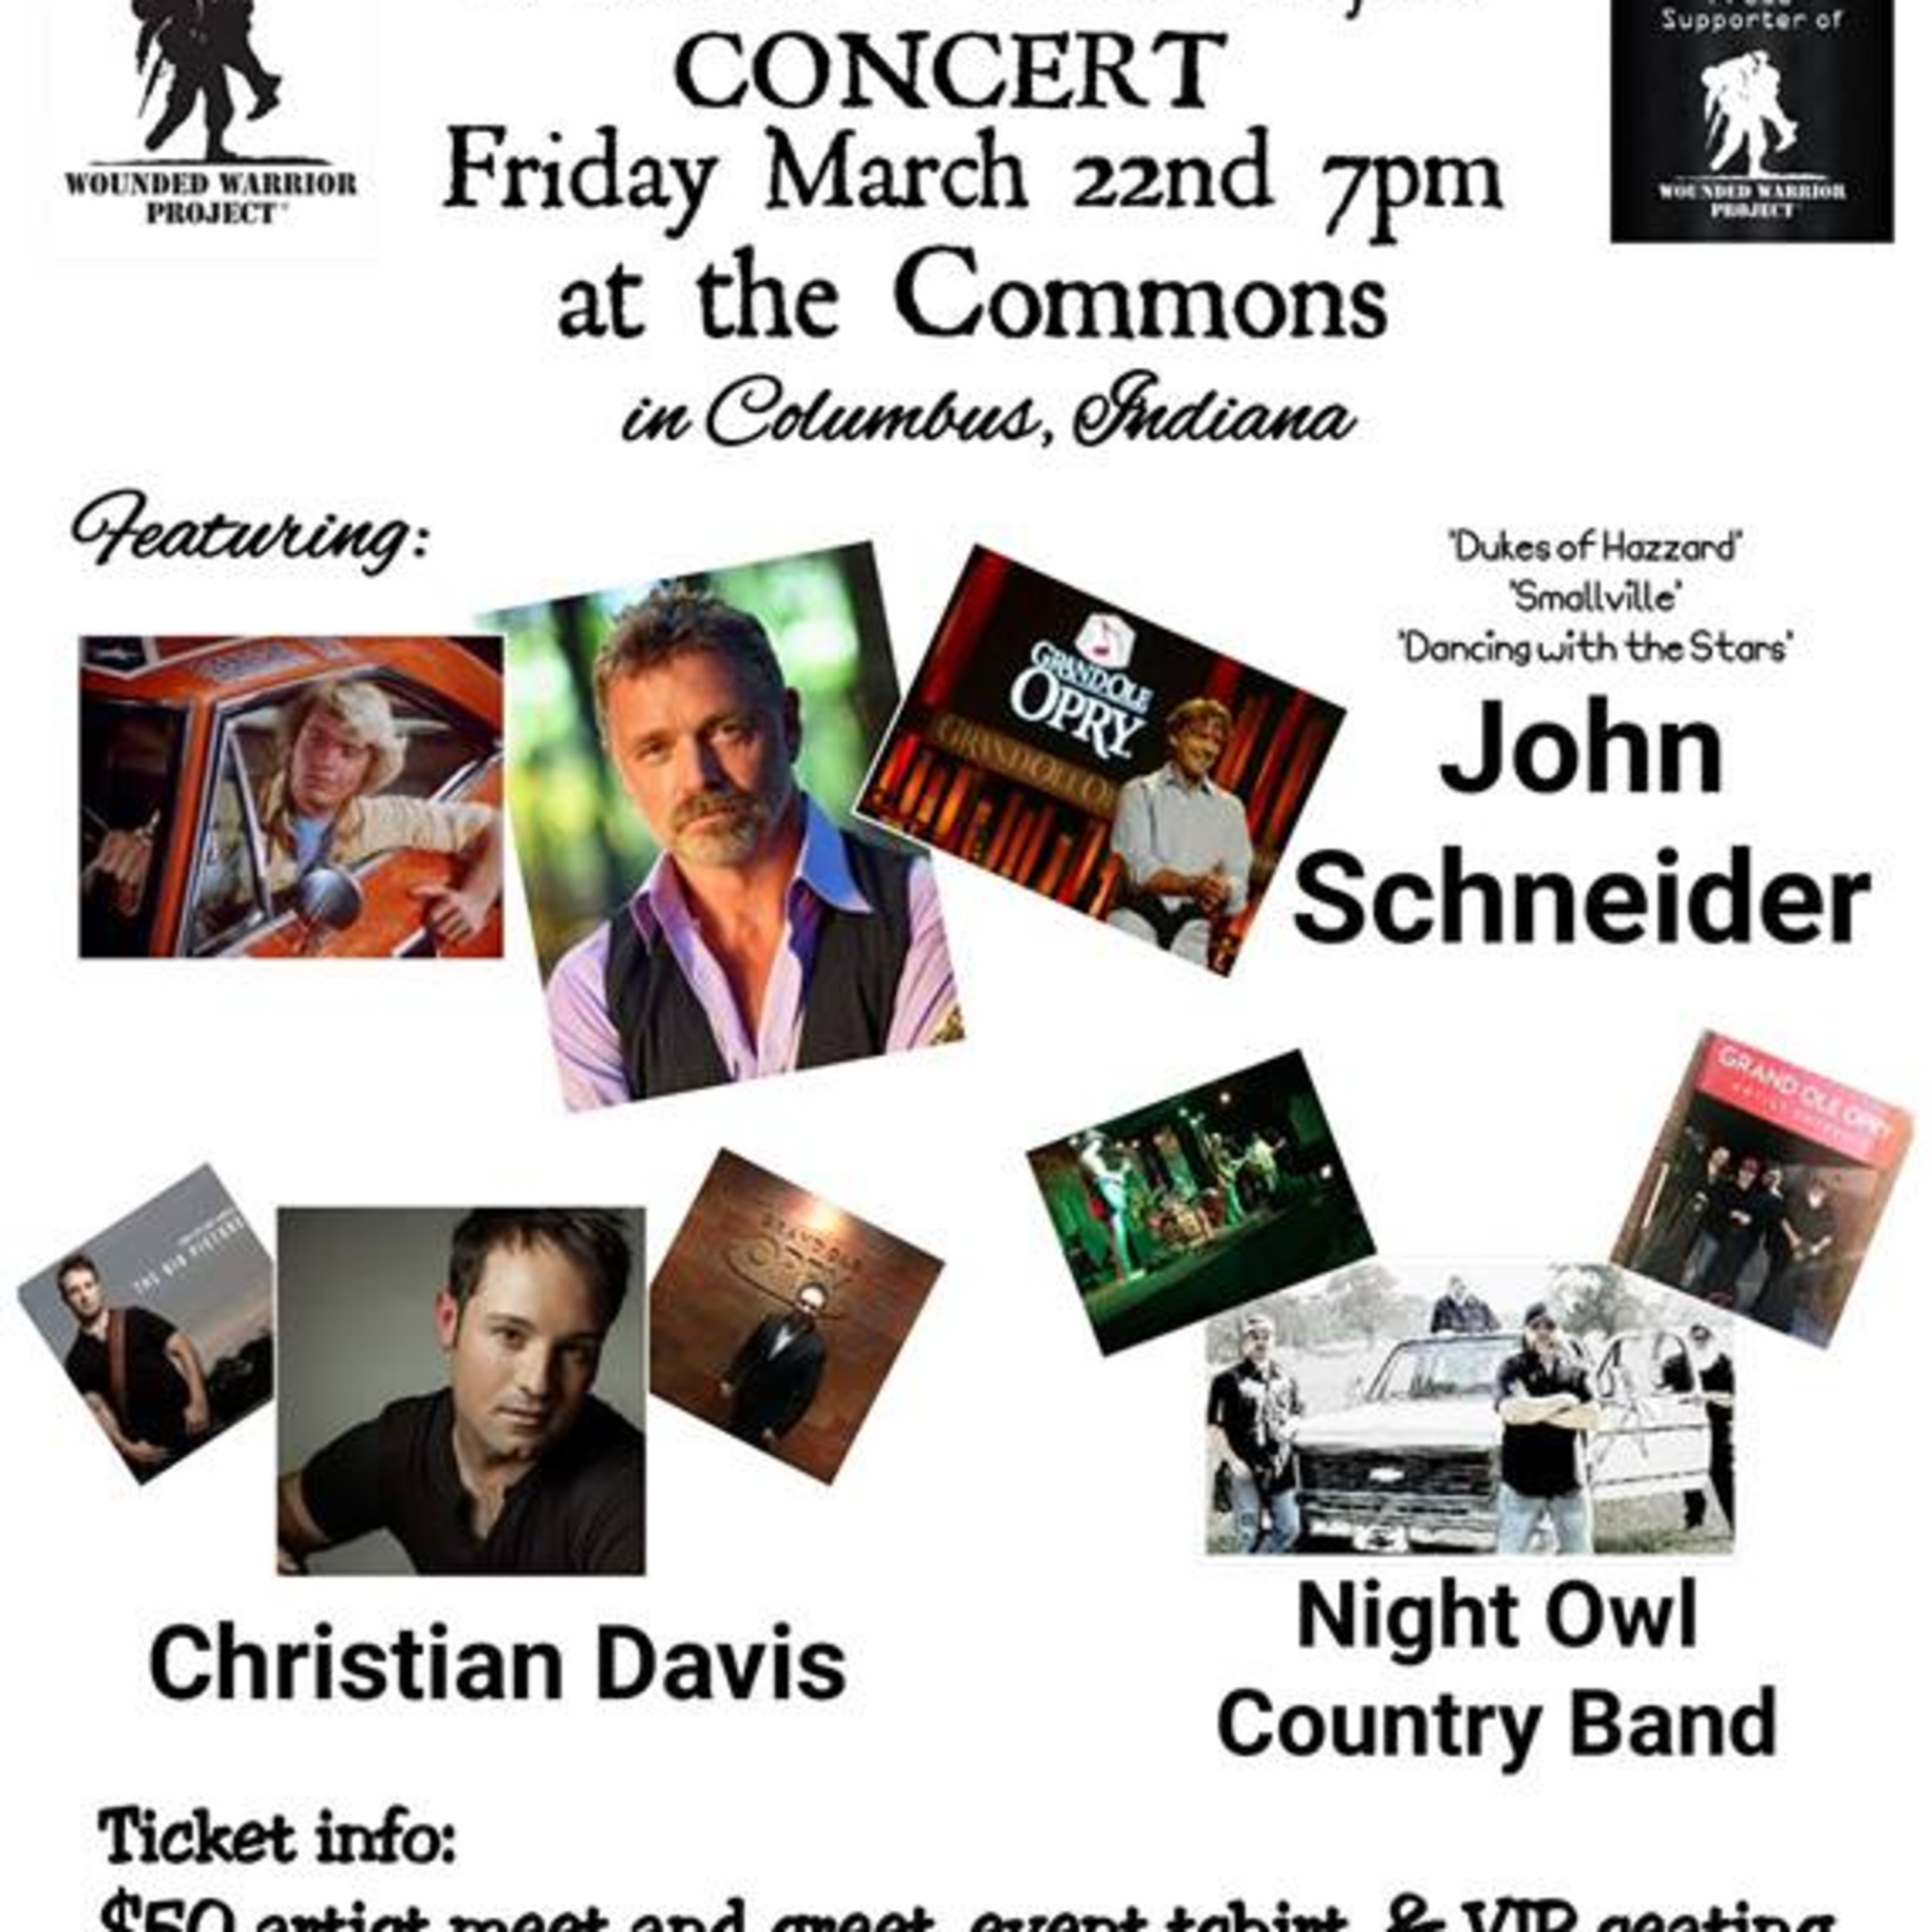 WWP Concert Recap with Music from John Schneider and the Night Owl Country Band